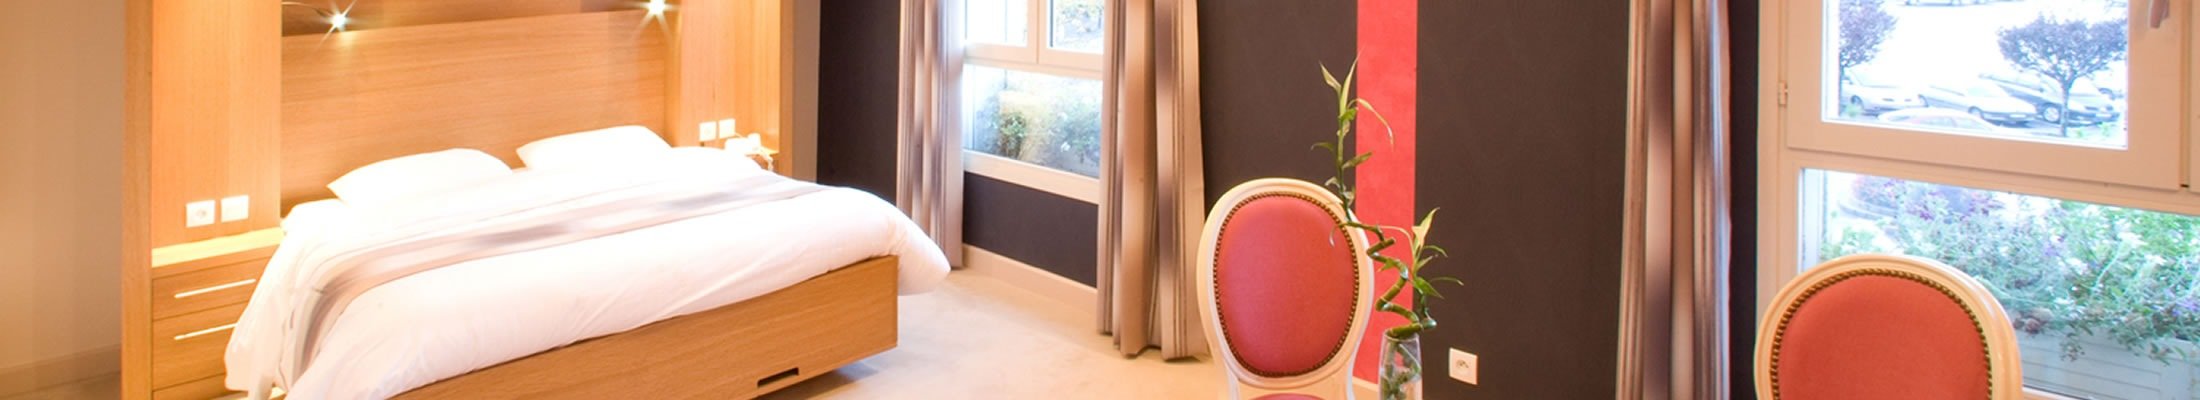 Comfort, quality, lifestyle Charming hotel Manche